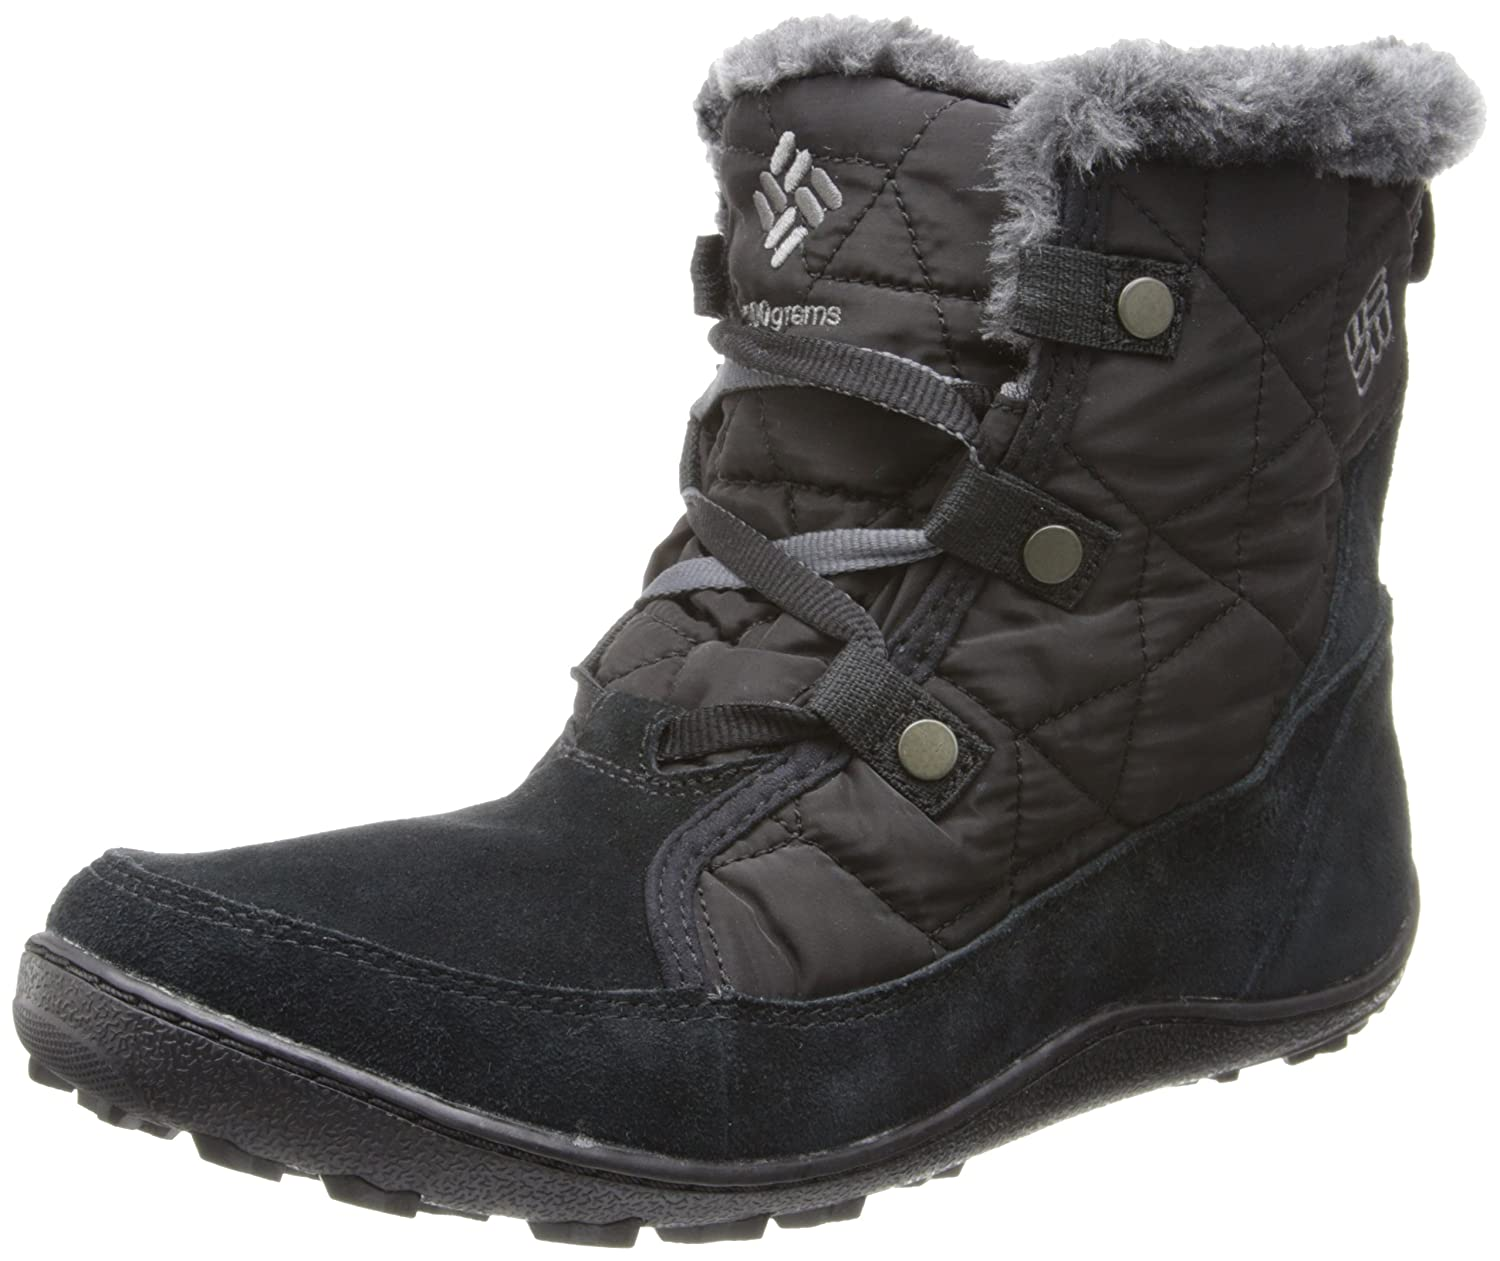 Columbia Women's Minx Shorty Alta Omni-Heat Snow Boot B00GW8GEGI 9.5 B(M) US|Black, Shale